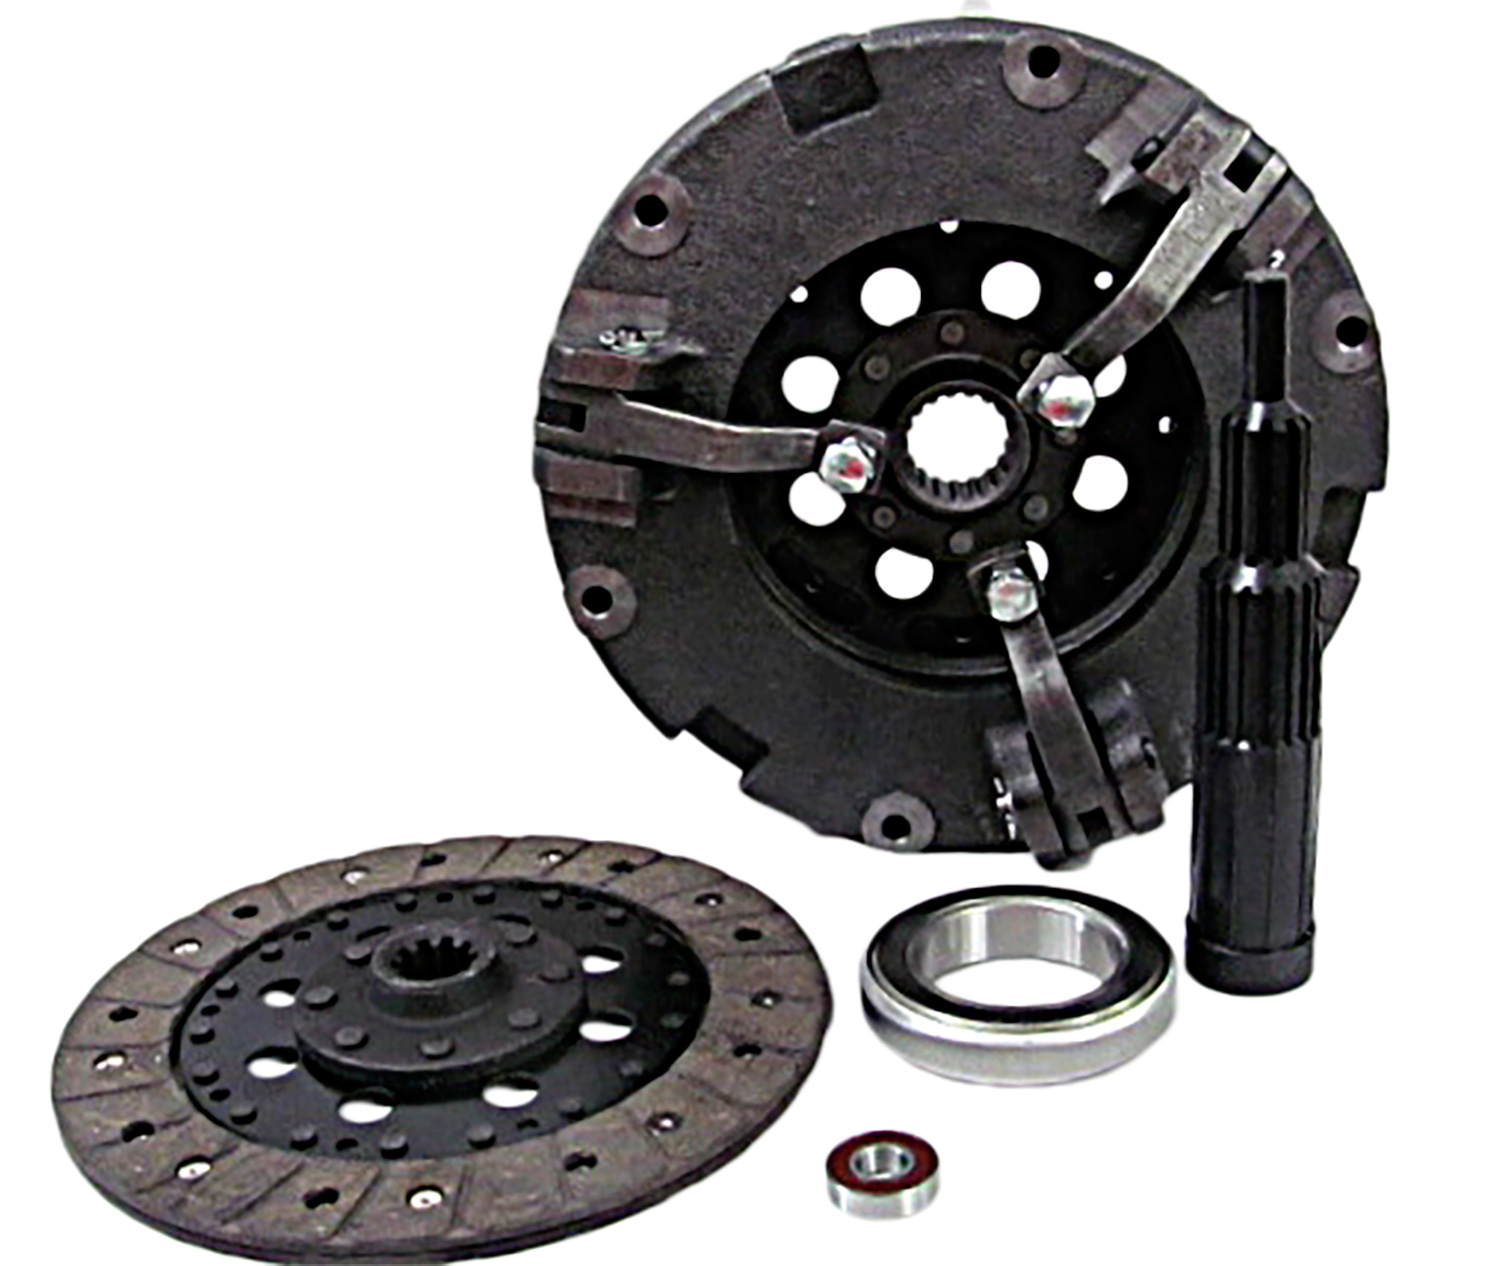 Clutch Parts for Ford/New Holland Compact Tractors